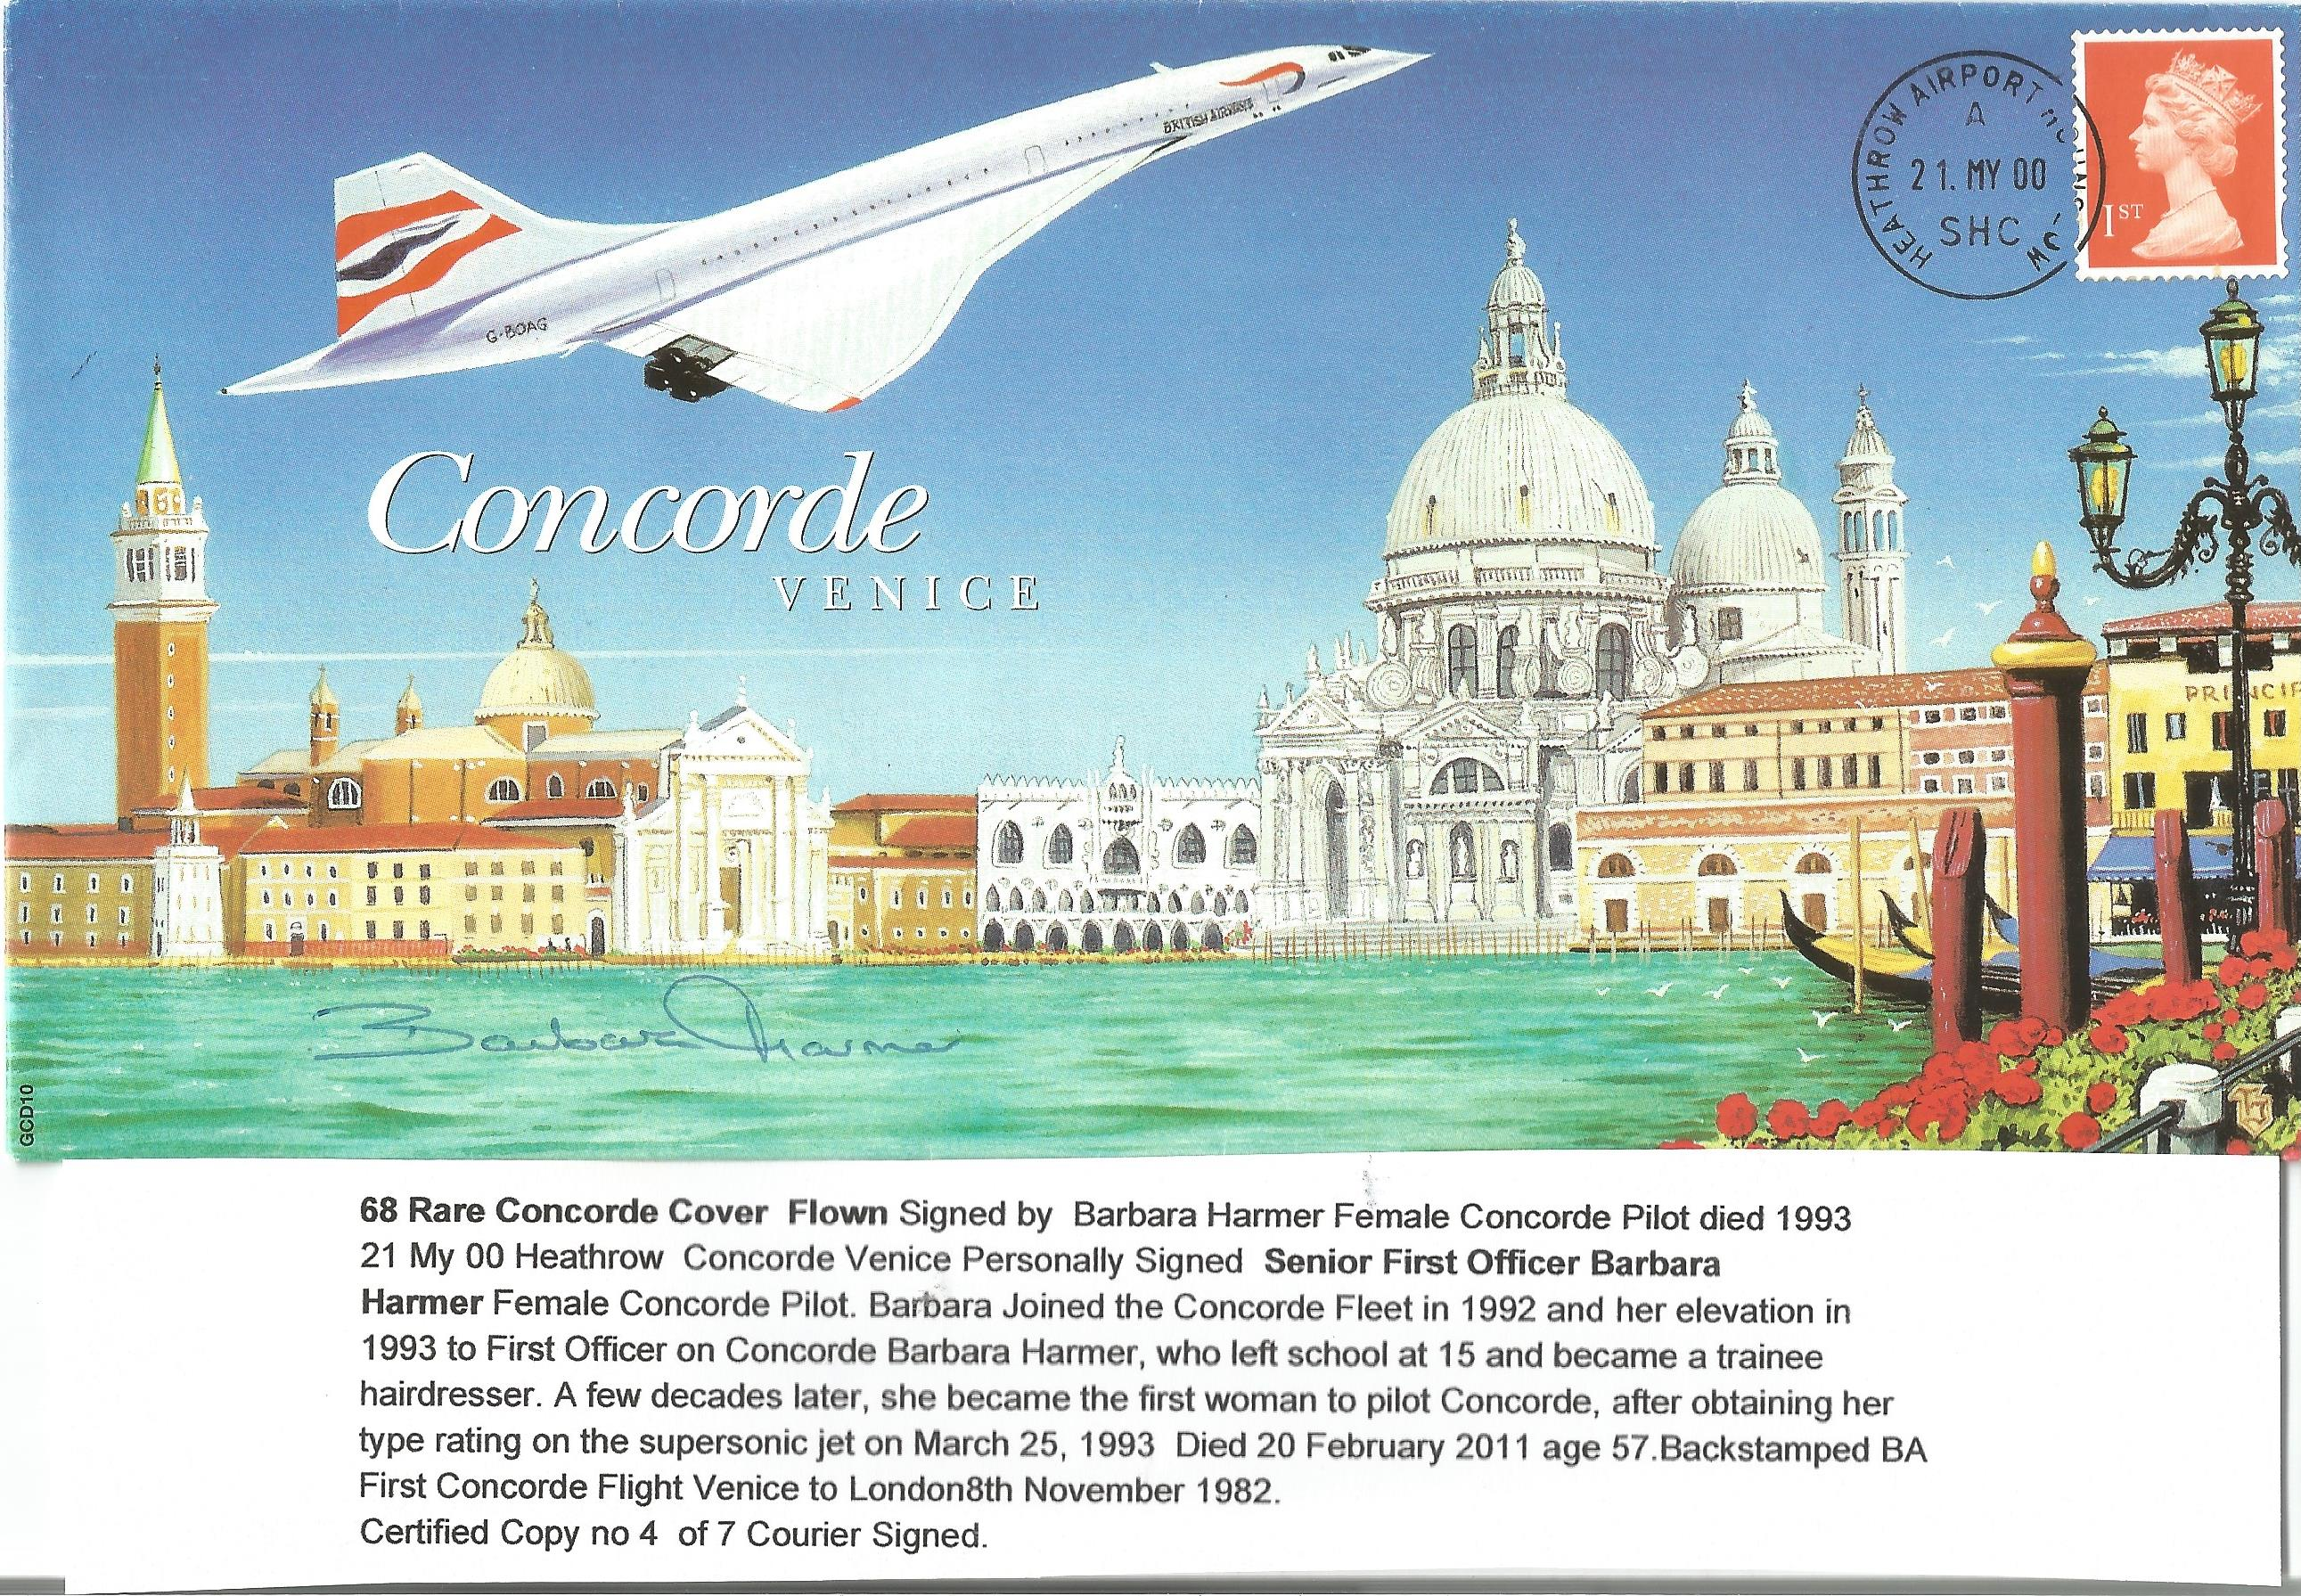 Concorde Barbara Harmer signed Concorde Venice FDC limited edition 4 of 7 courier signed PM Heathrow